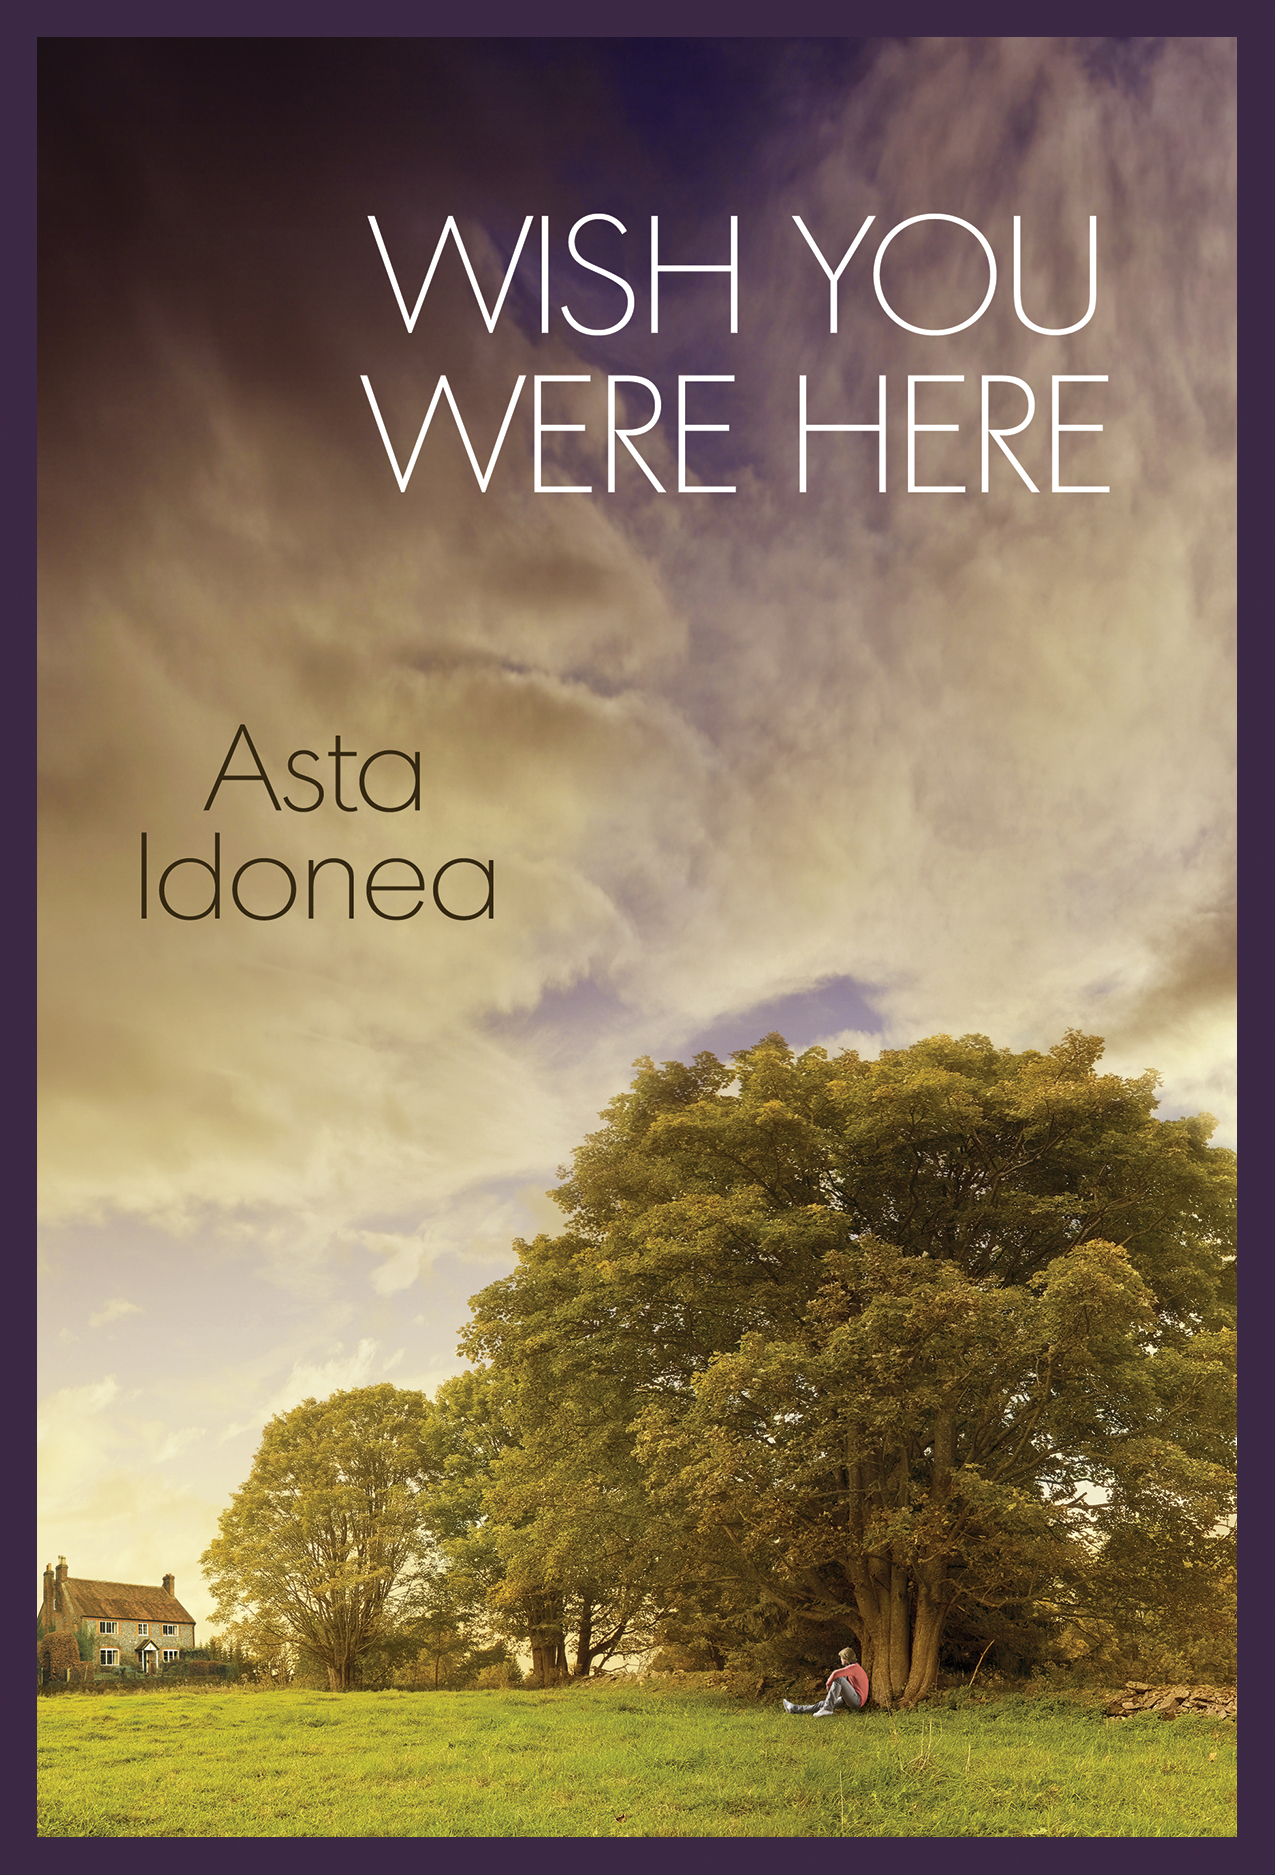 Wish You Were Here by Asta Idonea